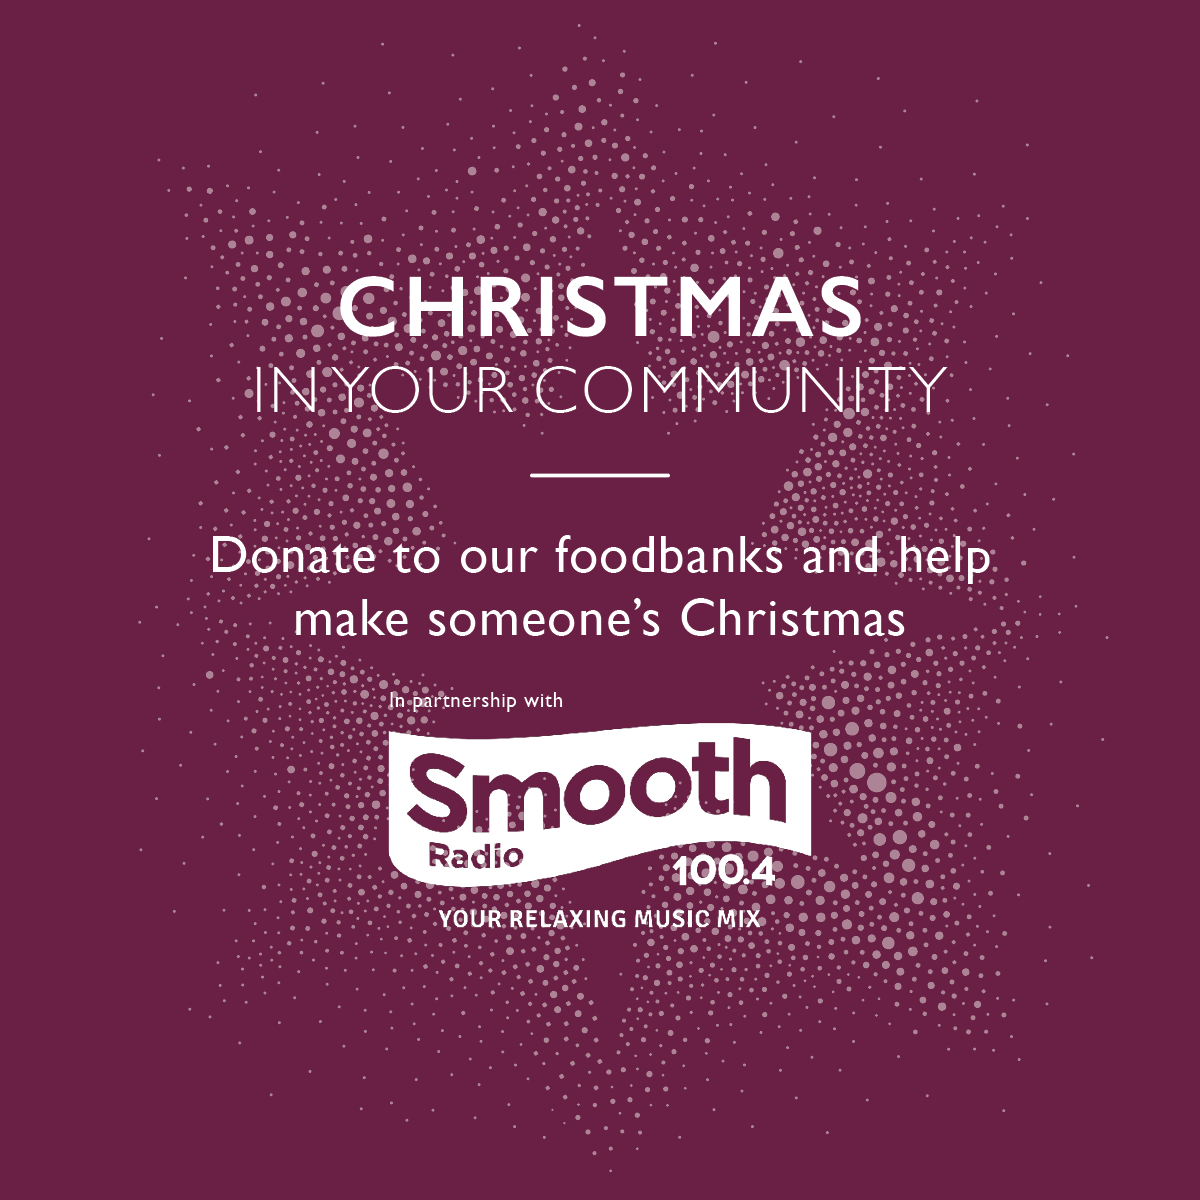 Christmas in your community